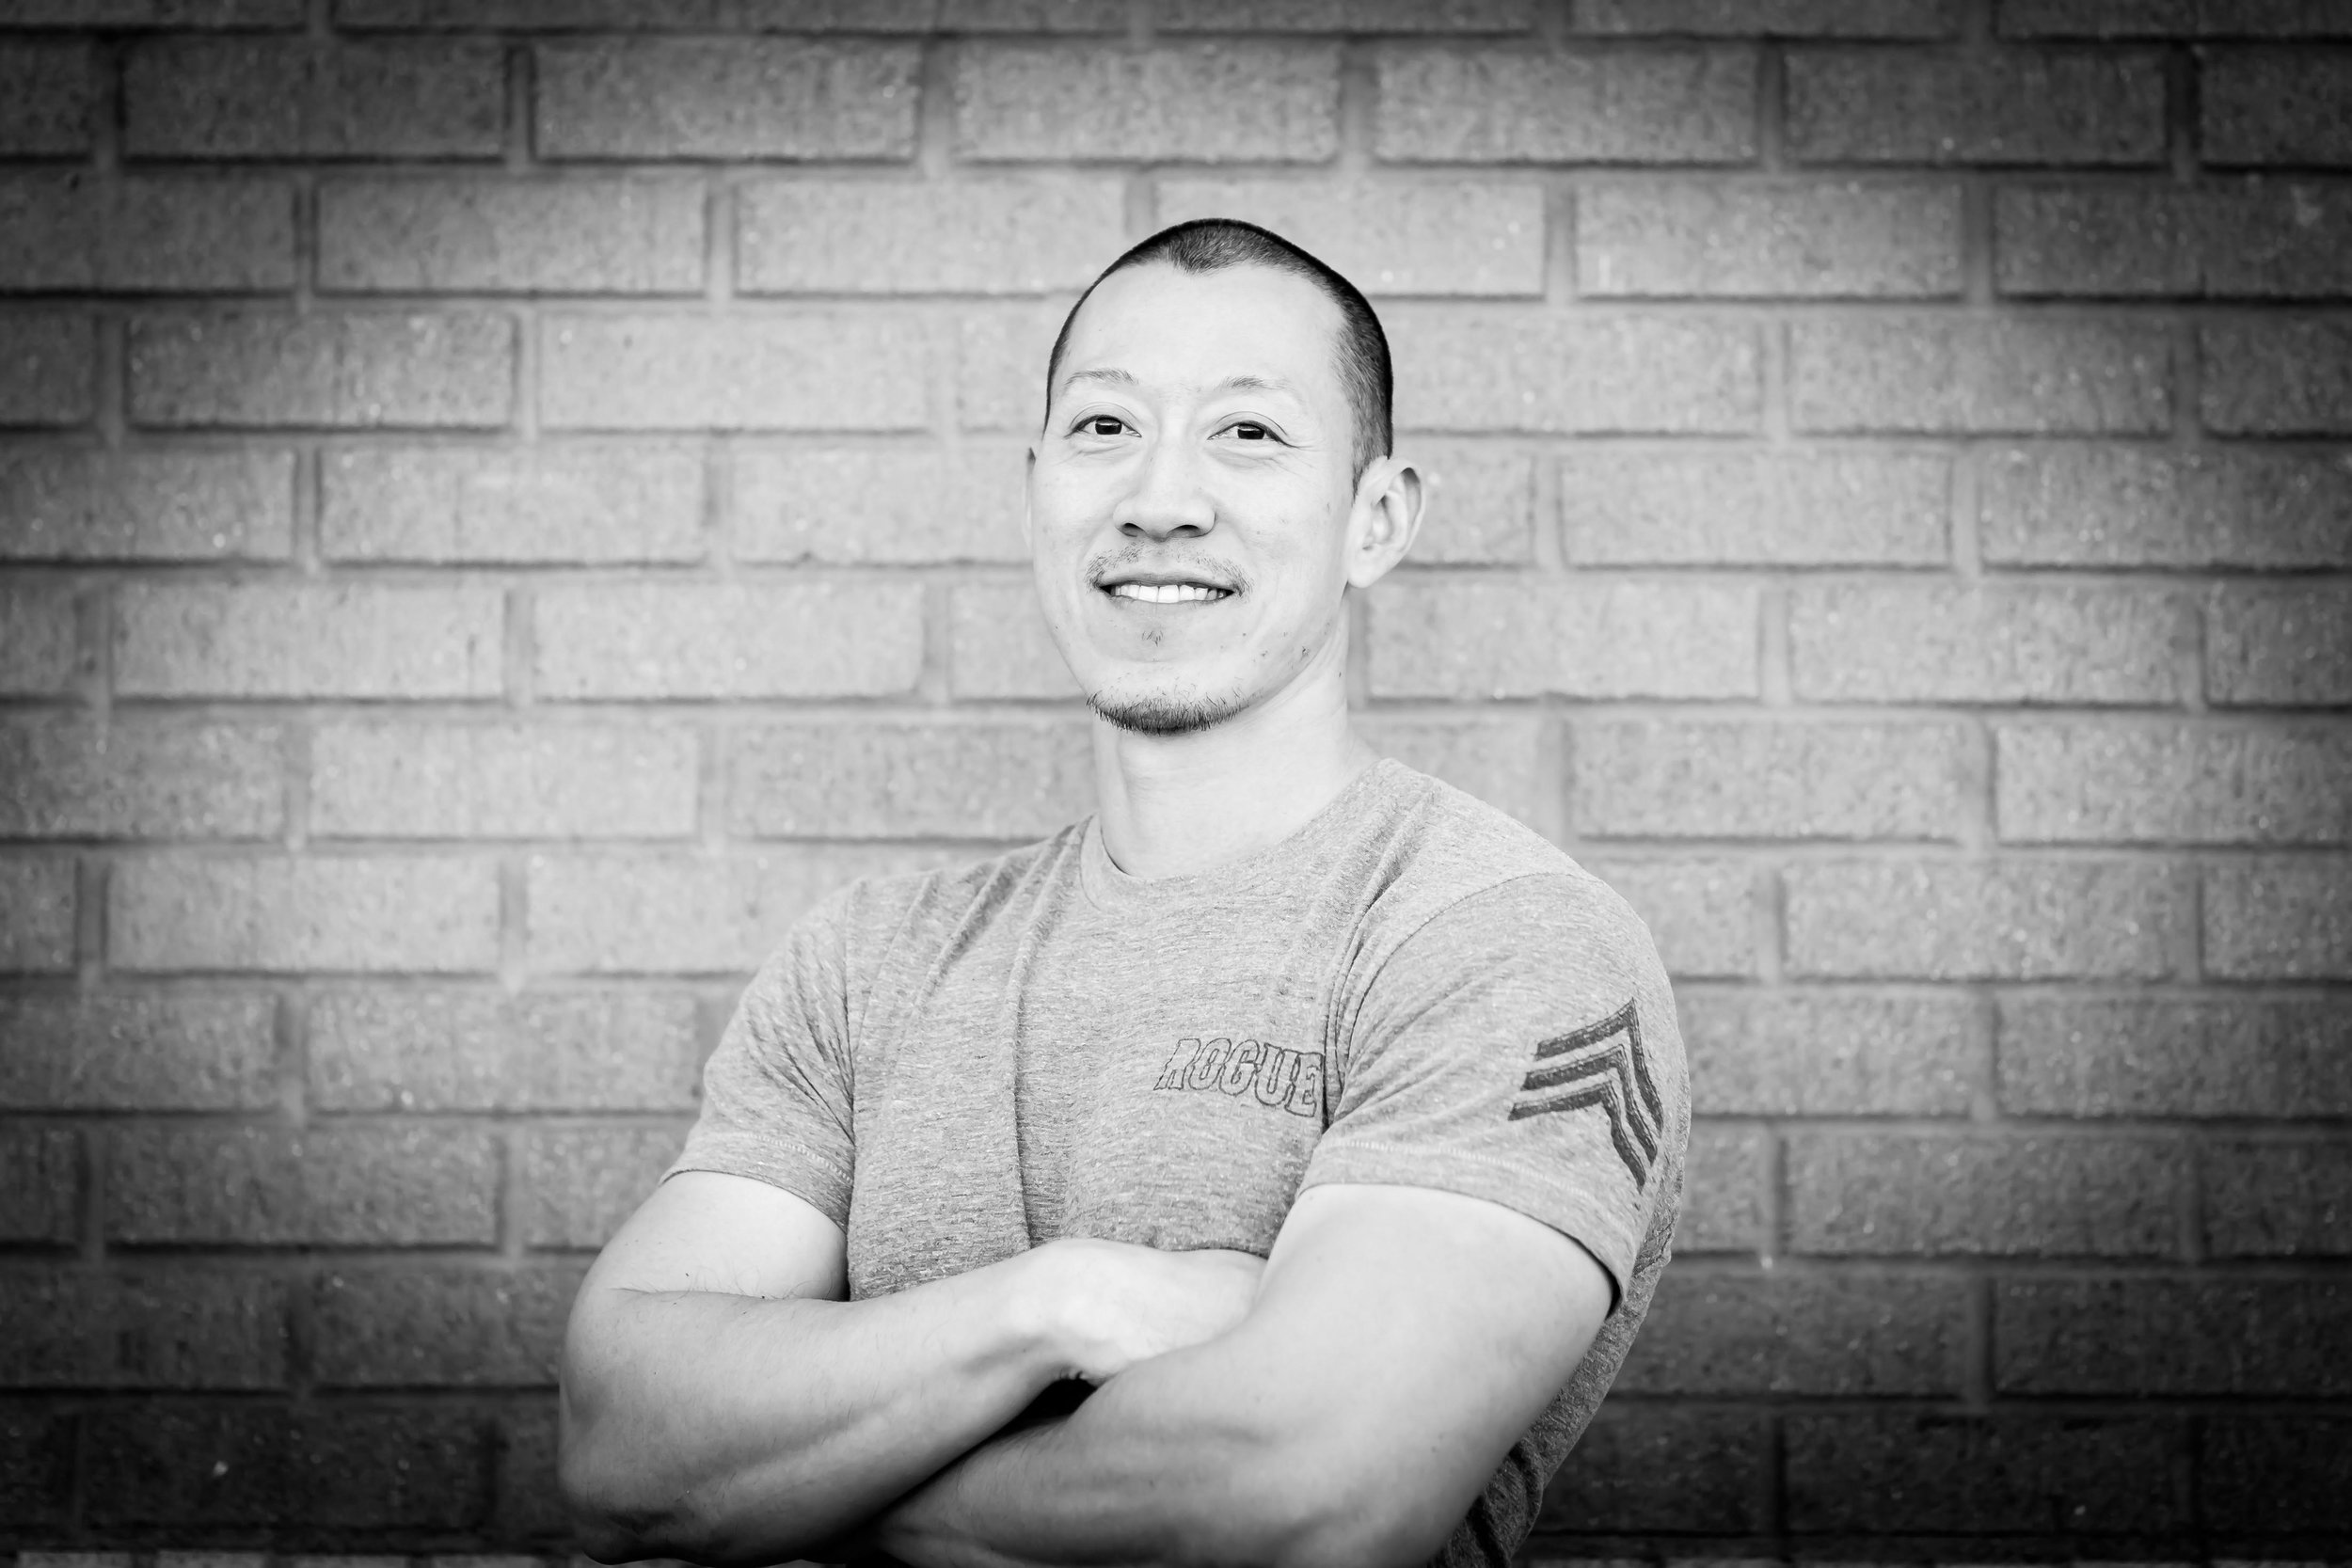 Jeremy - CO-OWNER & HEAD COACH, CF-L2With over 15 years of experience as a personal trainer and fitness expert, Jeremy is thrilled to be opening his second CrossFit gym after relocating from Las Vegas to Colorado Springs. He discovered the profound benefits of functional training after incorporating CrossFit into his personal training programming, and has never looked back.His first gym, CrossFit New You proved to be a life-changing venture that blossomed into the New You Challenge, a program now utilized by over 1,000 CrossFit gyms worldwide. He has also been fortunate enough to work and coach alongside athletes in the industry including CrossFit Games athletes Elijah Muhammed and Tommy Hackenbruck.Jeremy enjoys reading and researching all things fitness and CrossFit, eating food, and playing at the park with pups Turtle and Lula.Jeremy can be reached atjhsia11@hotmail.com or you can visit him on instagram @jeremyhsia.